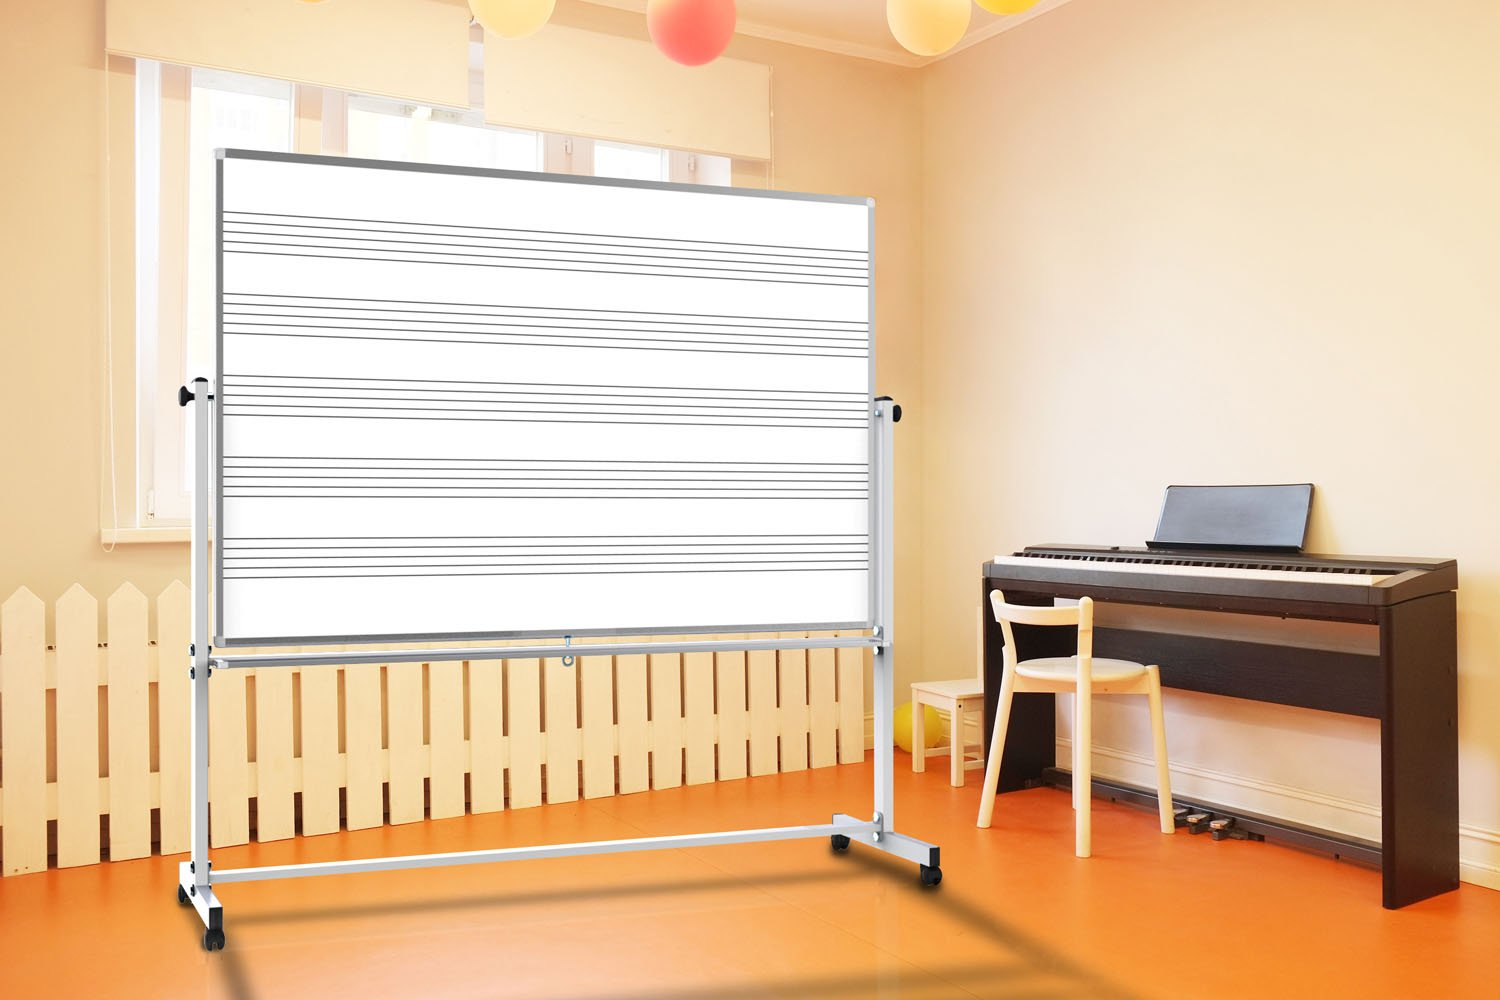 Offex 72'' x 48 '' Double Sided Mobile Staff Printed Music Whiteboard by Offex (Image #3)